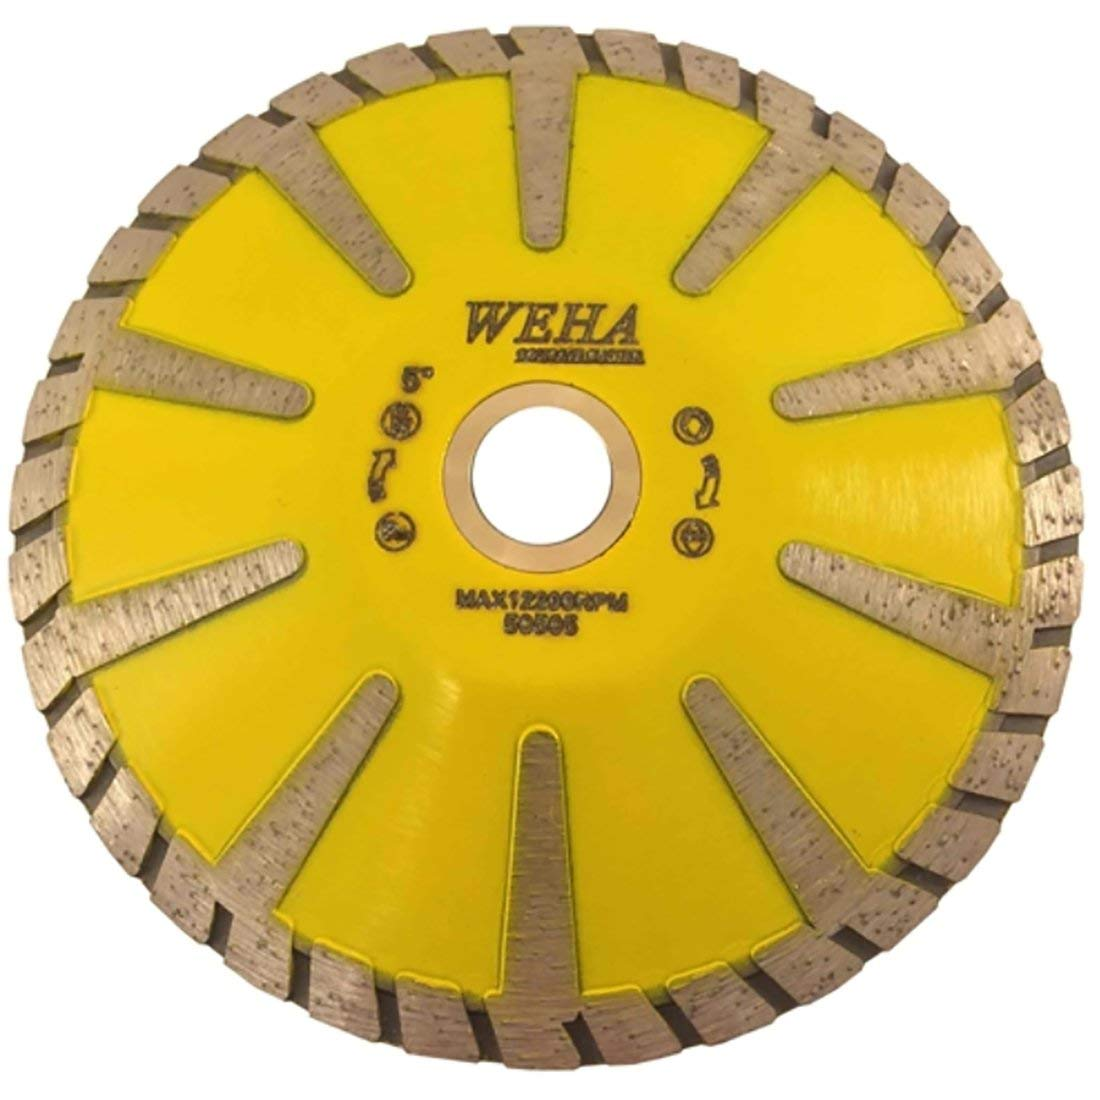 Weha Matrix Turbo Contour Blade with Side Diamond Cutting - 5 Inch